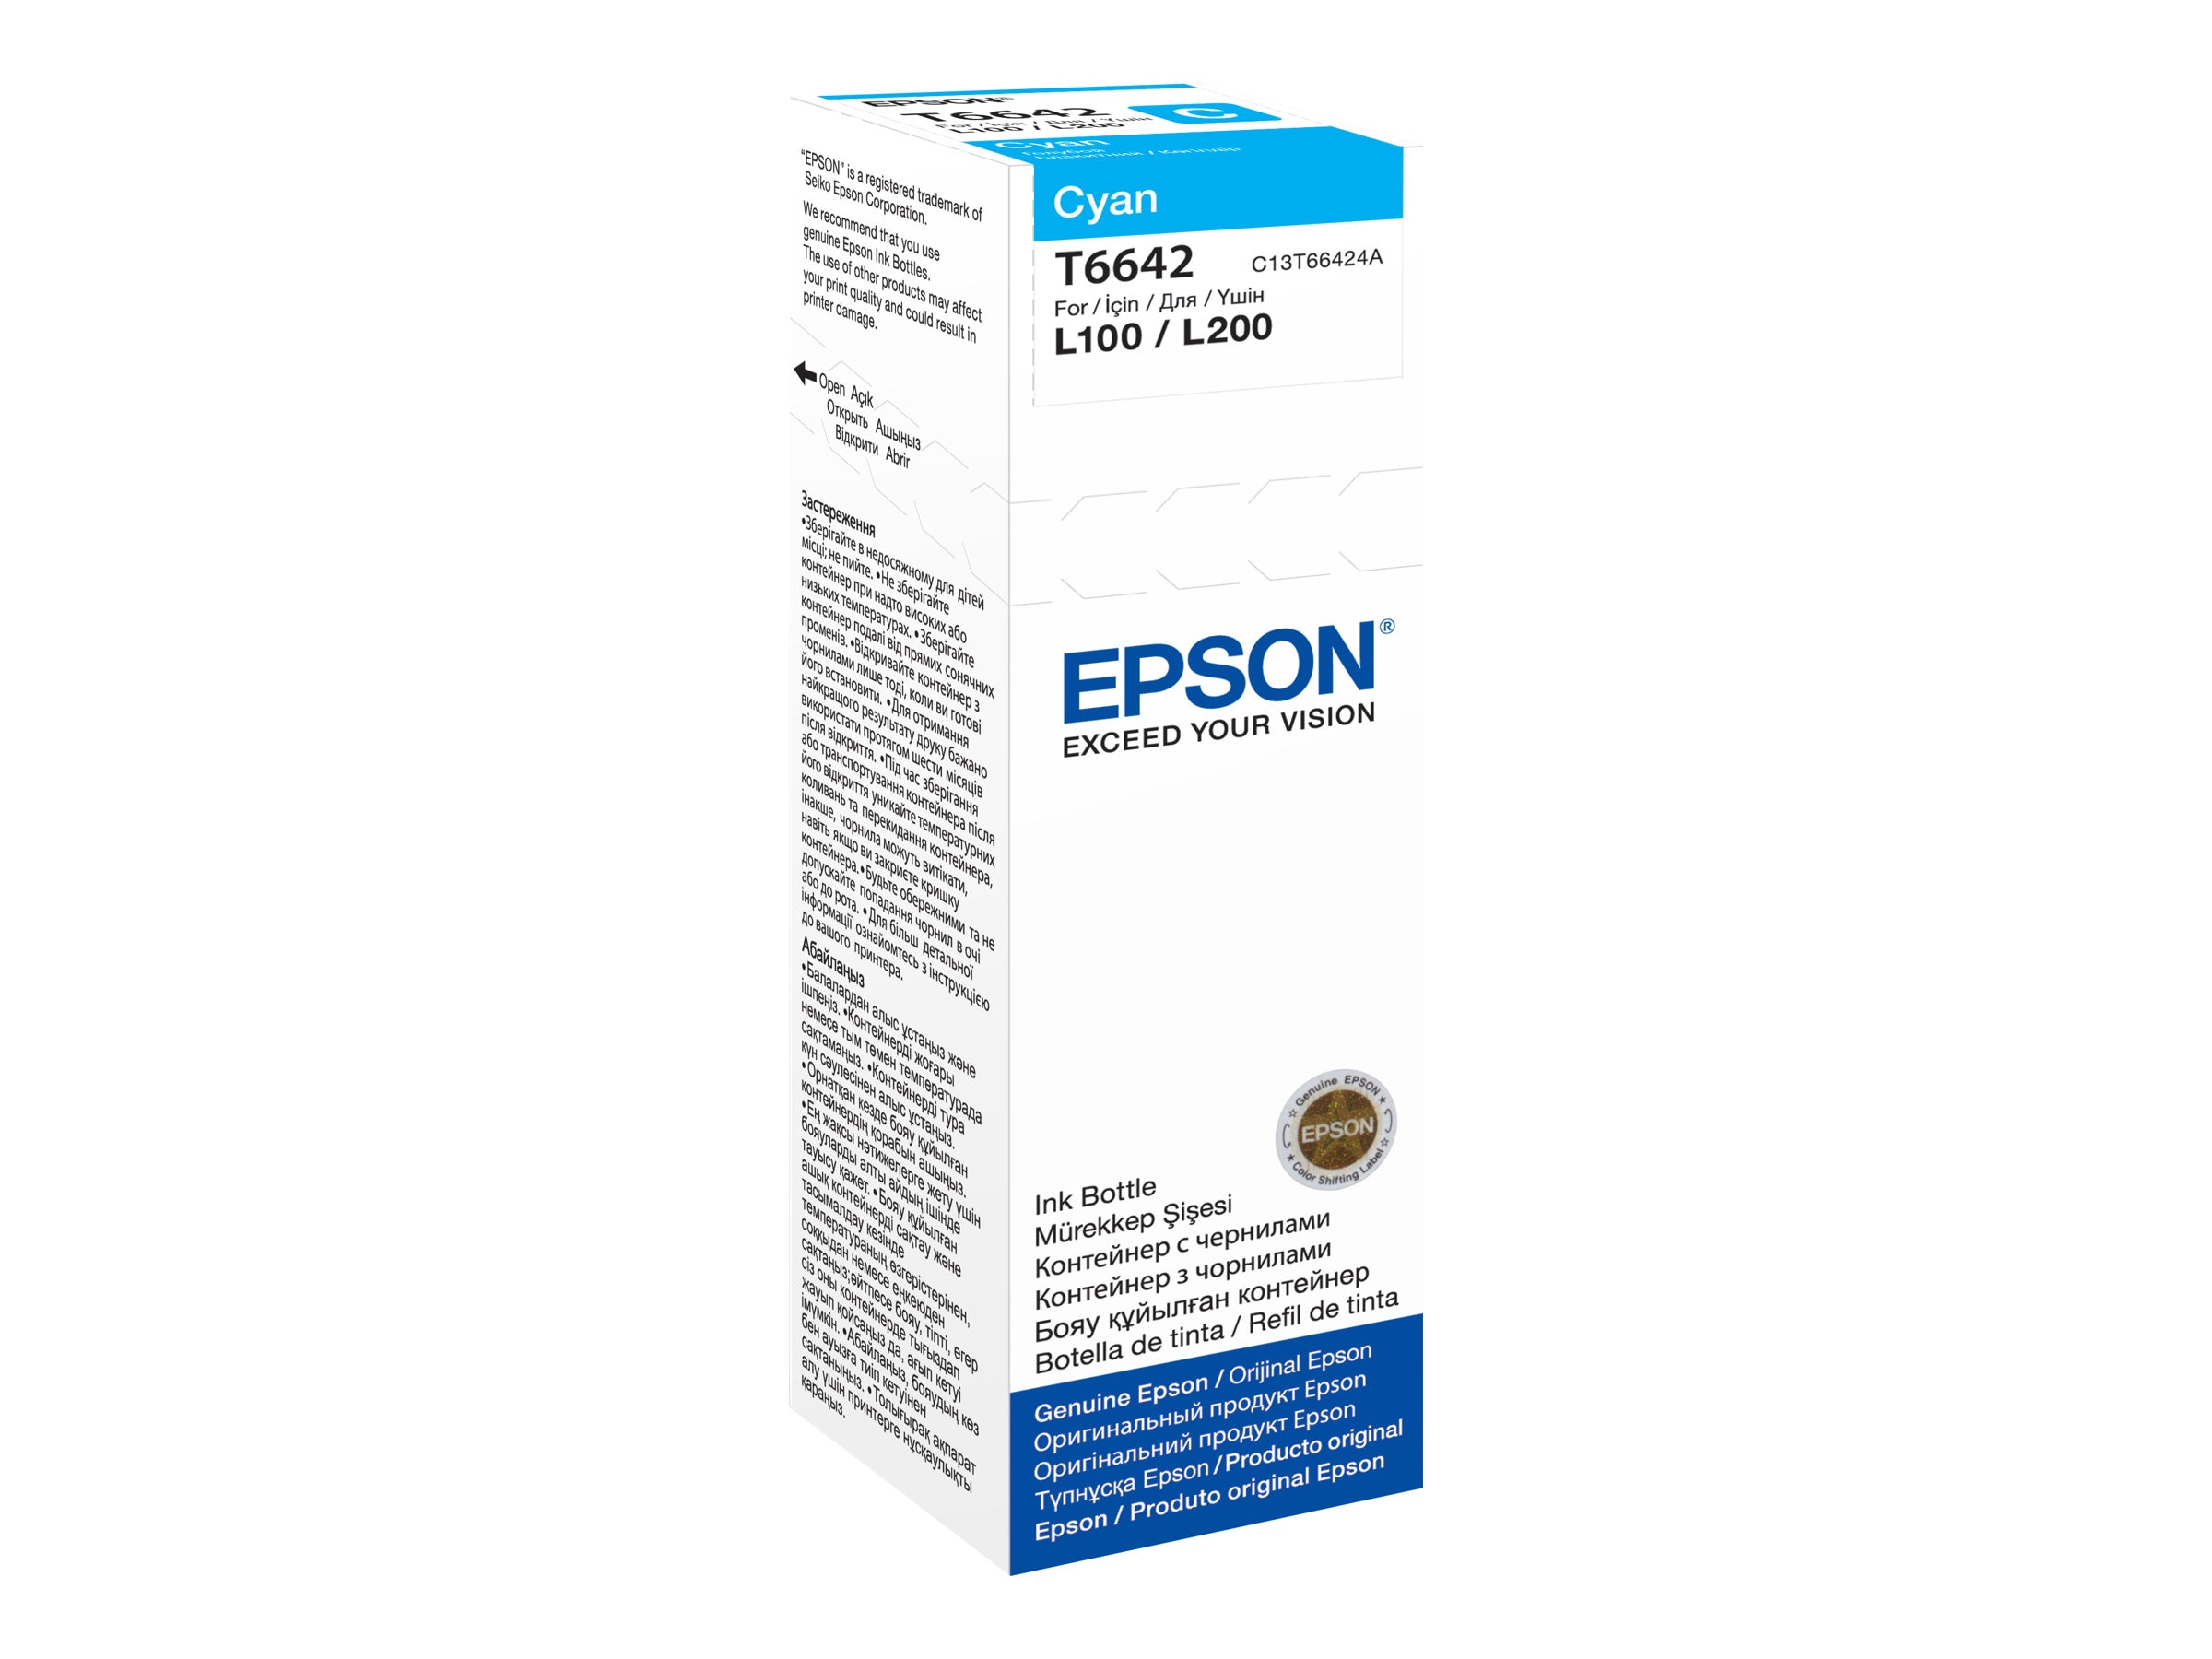 Epson Cyan T664 Ink Bottle, T664220